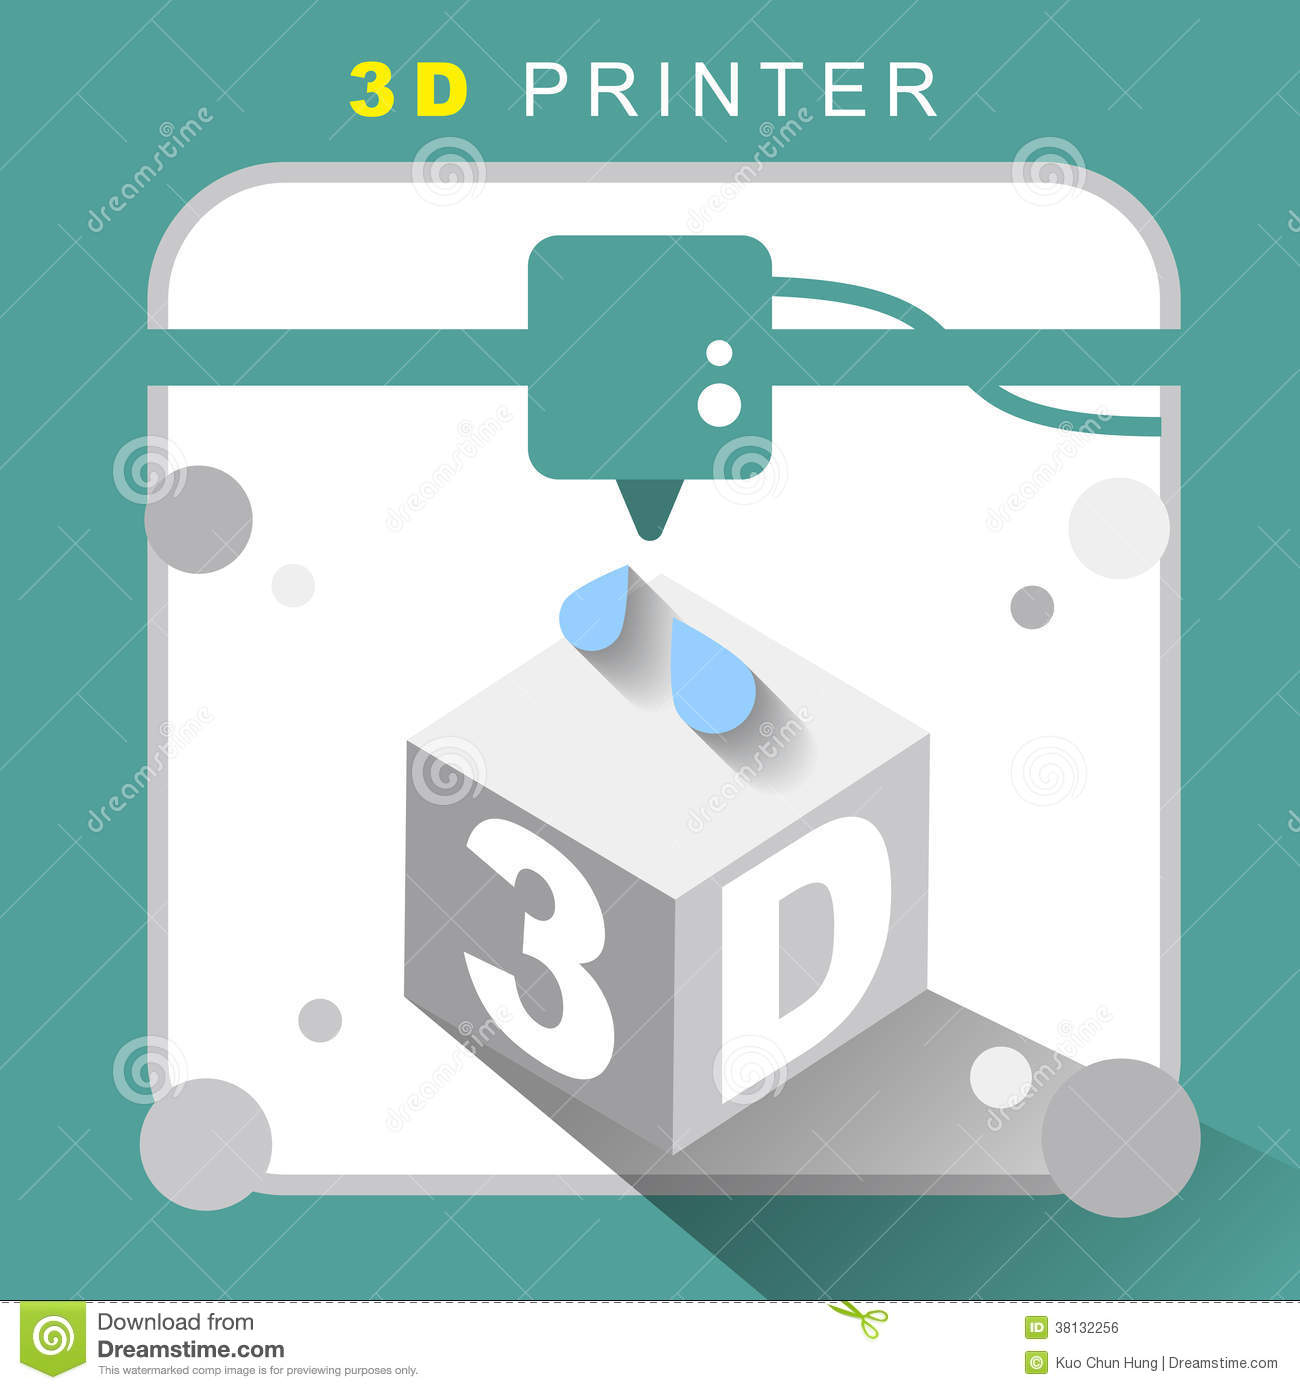 3d printer icon with flat design royalty free stock image for 3d flat design online